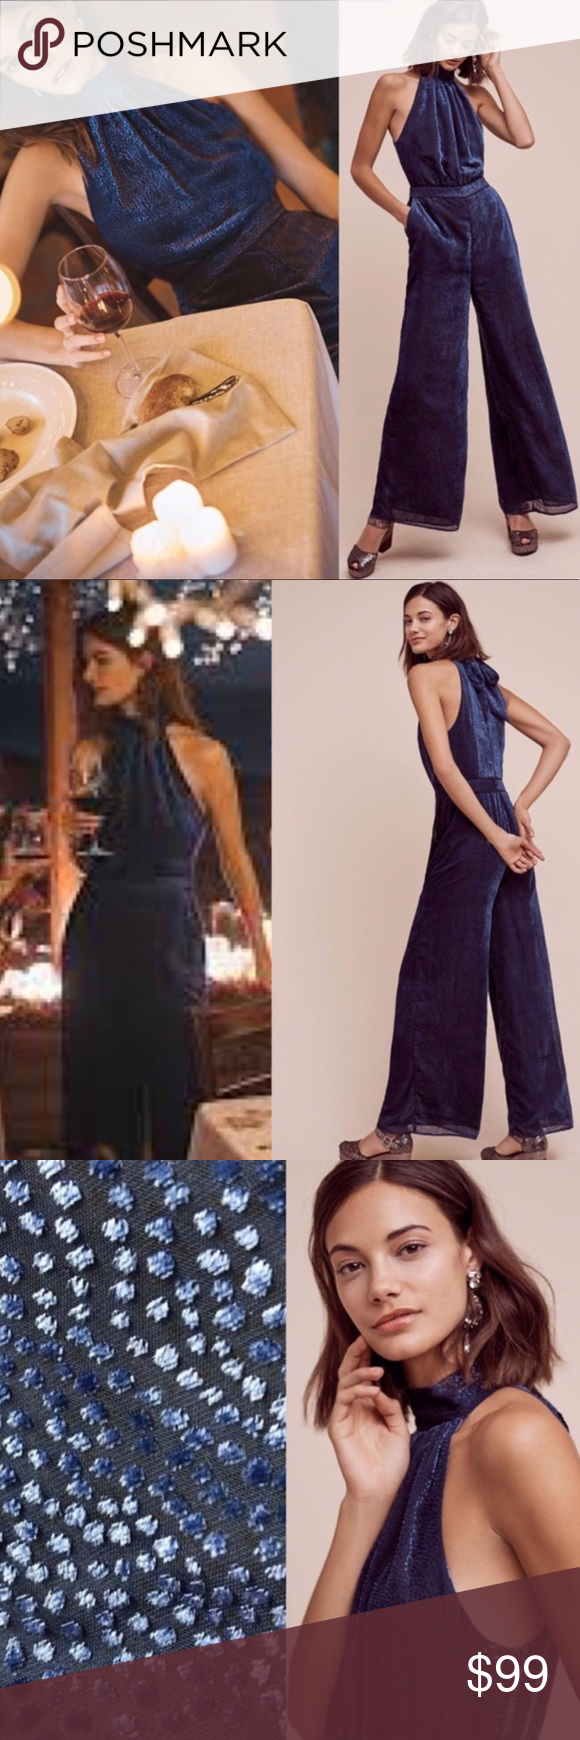 """678f61129e8a Anthropologie""""Elevenses"""" Blue Velvet Nova Jumpsuit Only worn one time for  my birthday and bought NWT! No flaws. Great condition Nylon"""